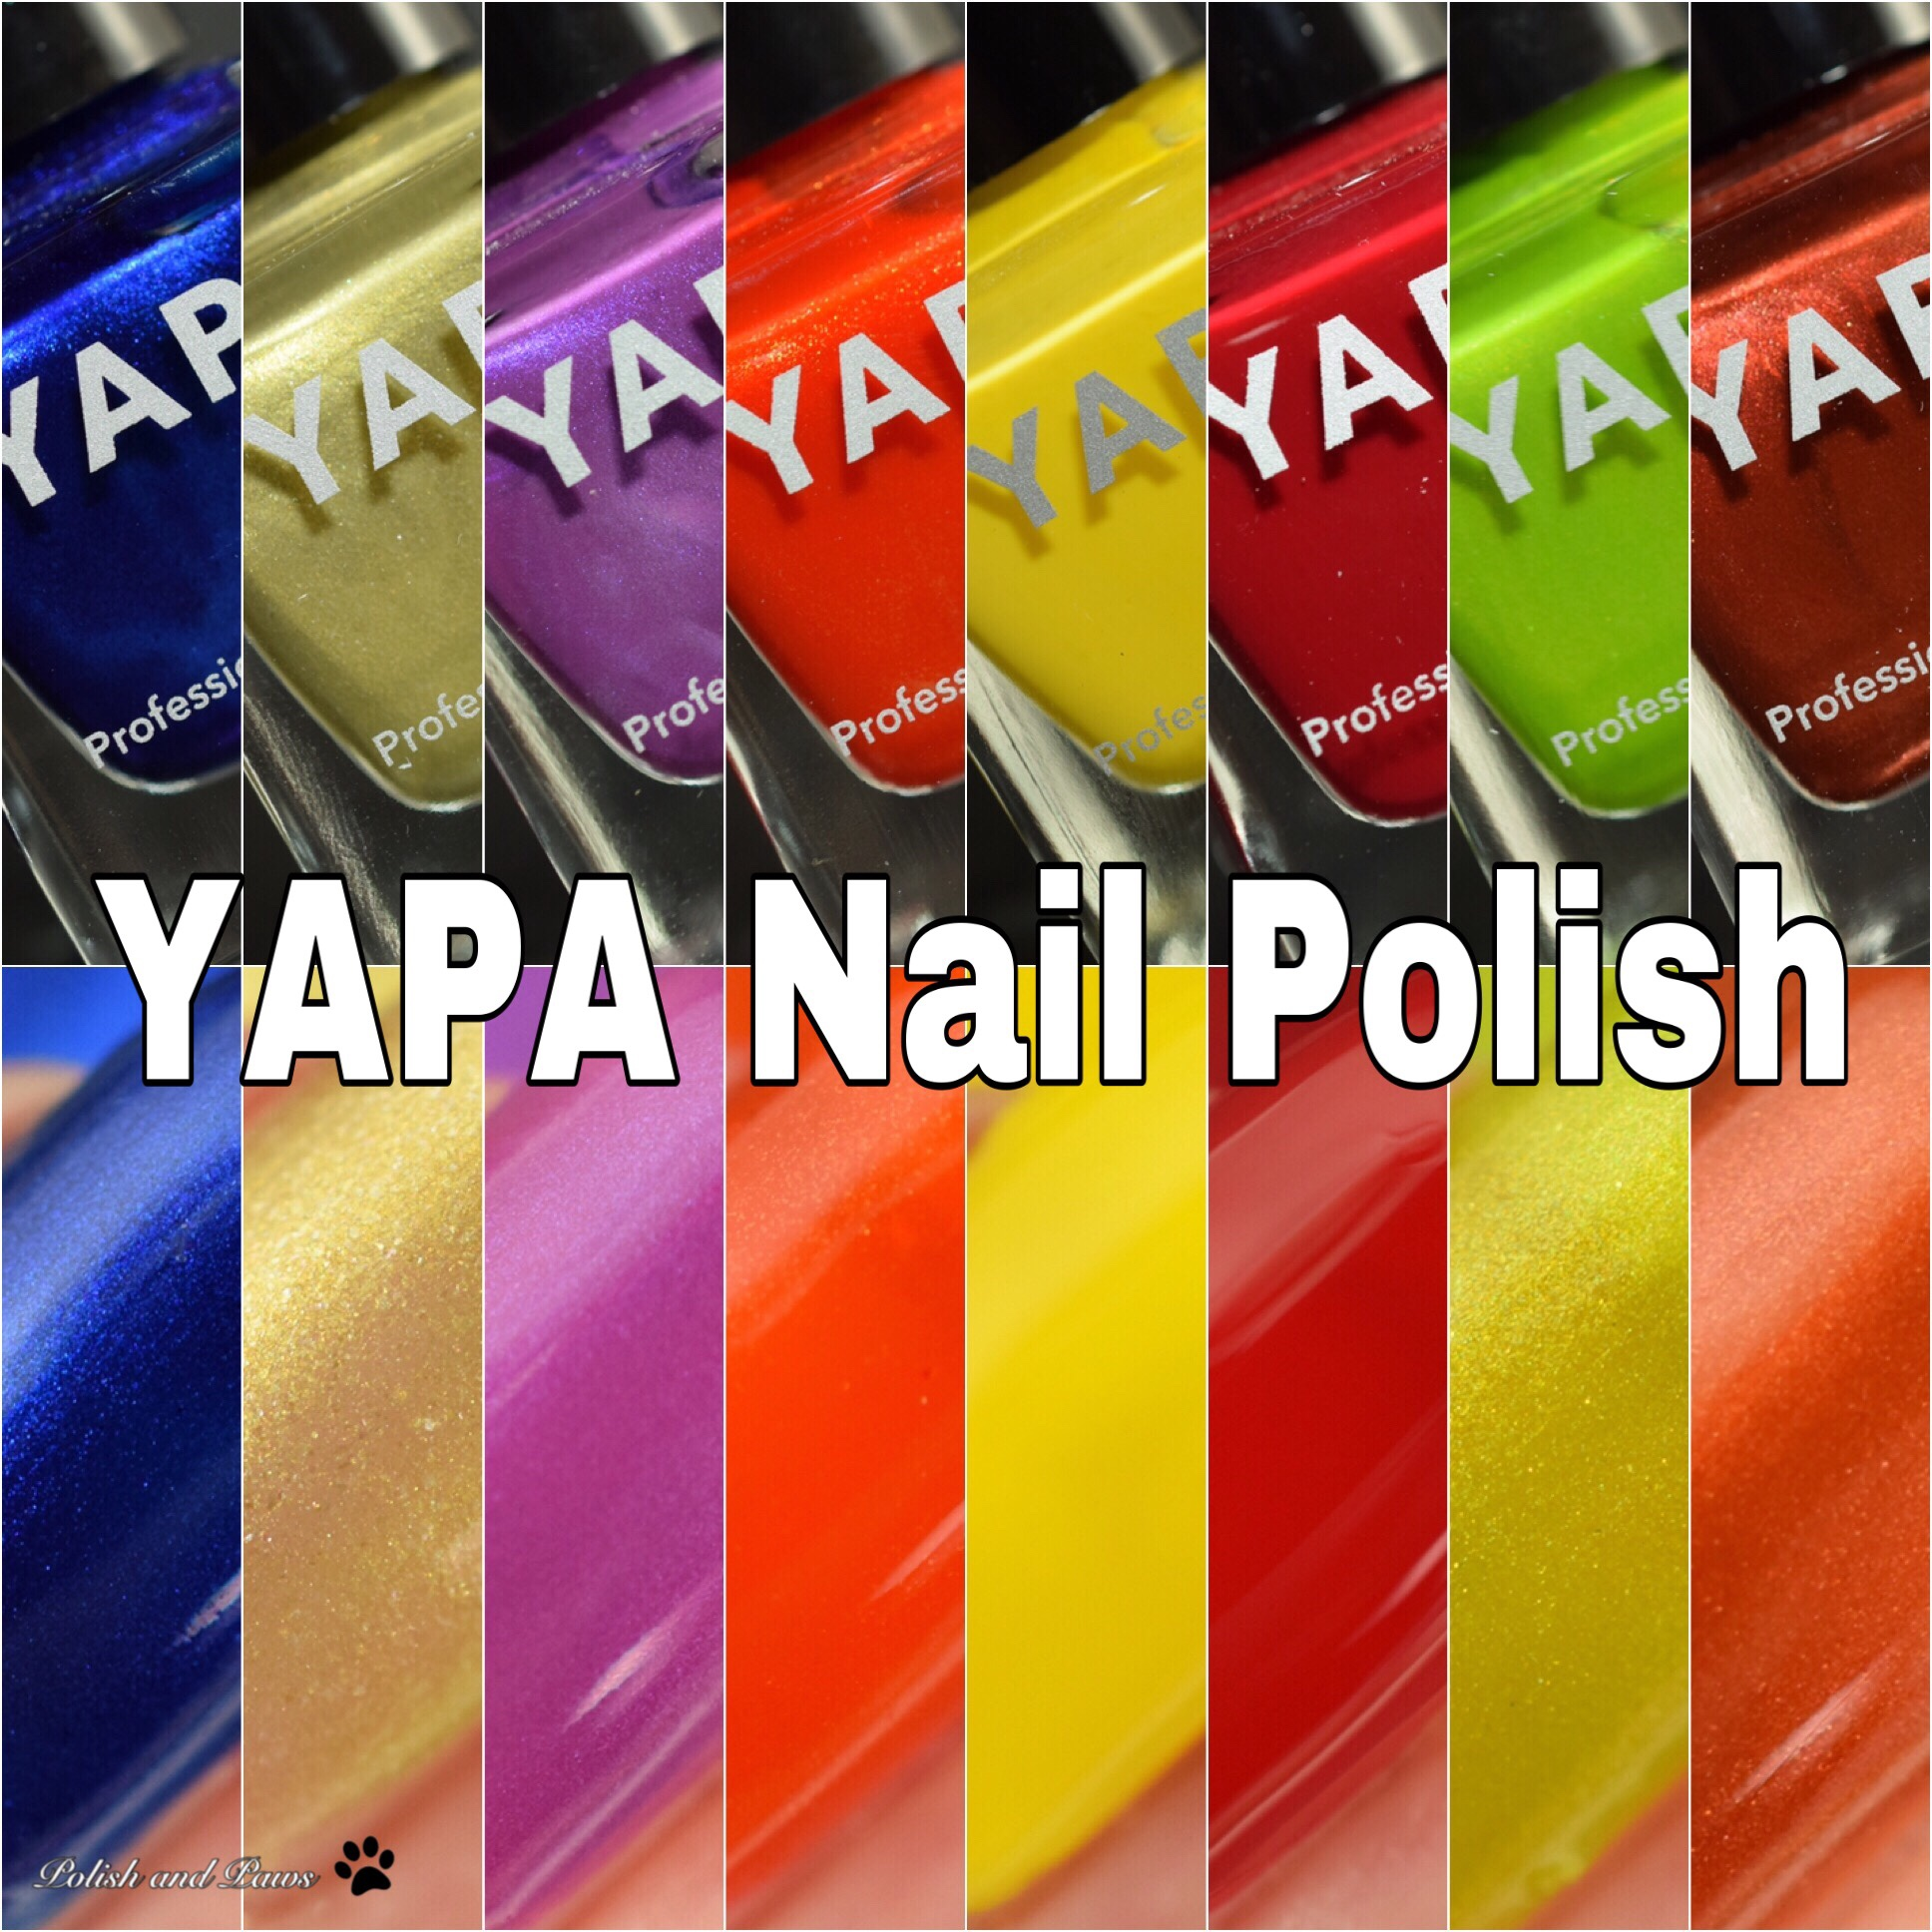 YAPA Nail Polish ~ Swatch and Review